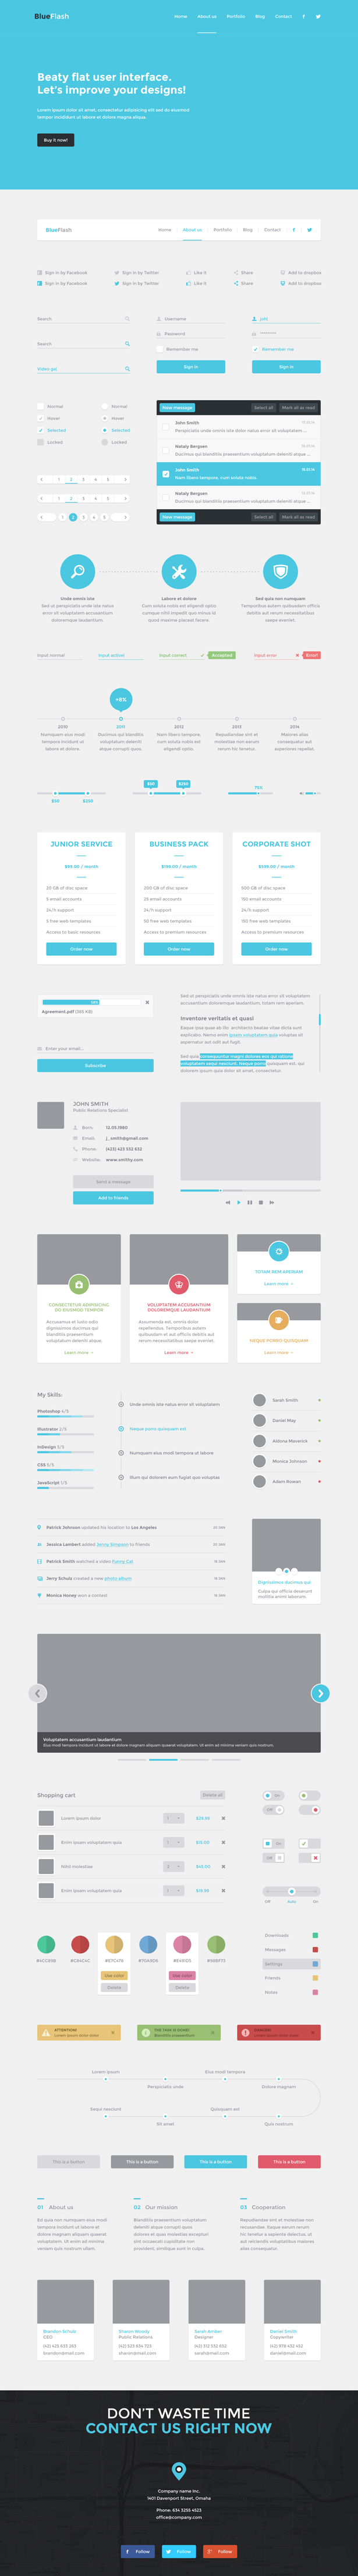 UI Kit PSD Four Pack